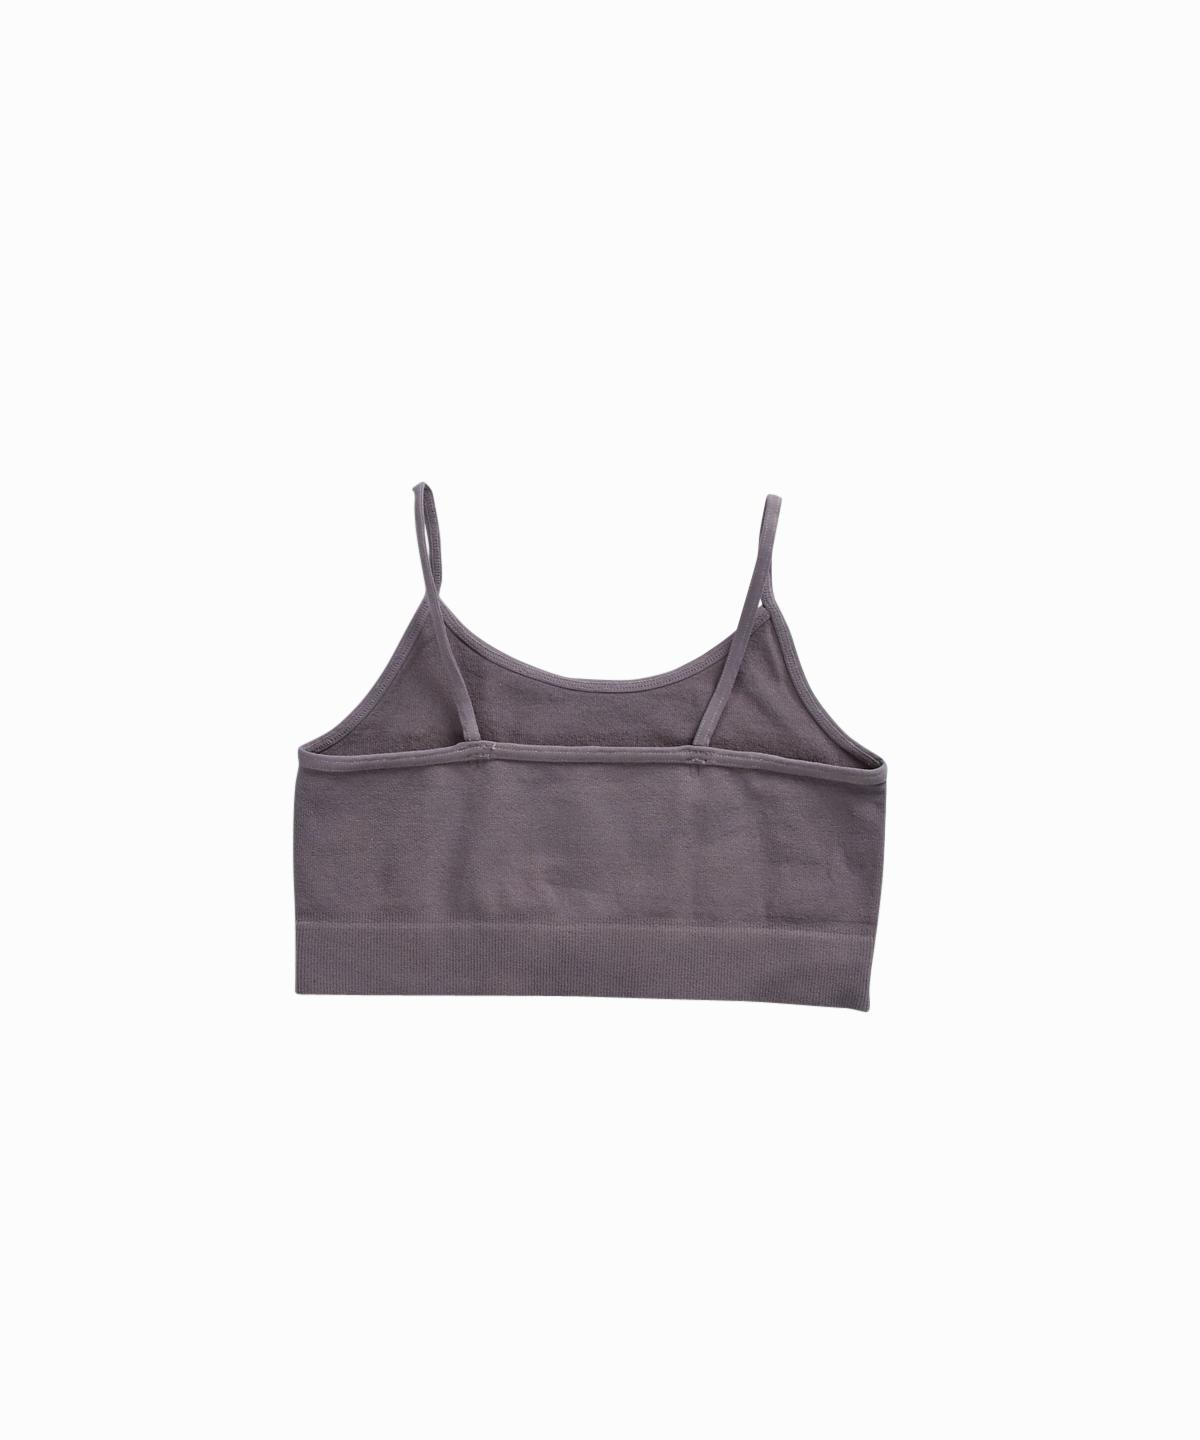 Exclusive Solid Grey Cami Bra